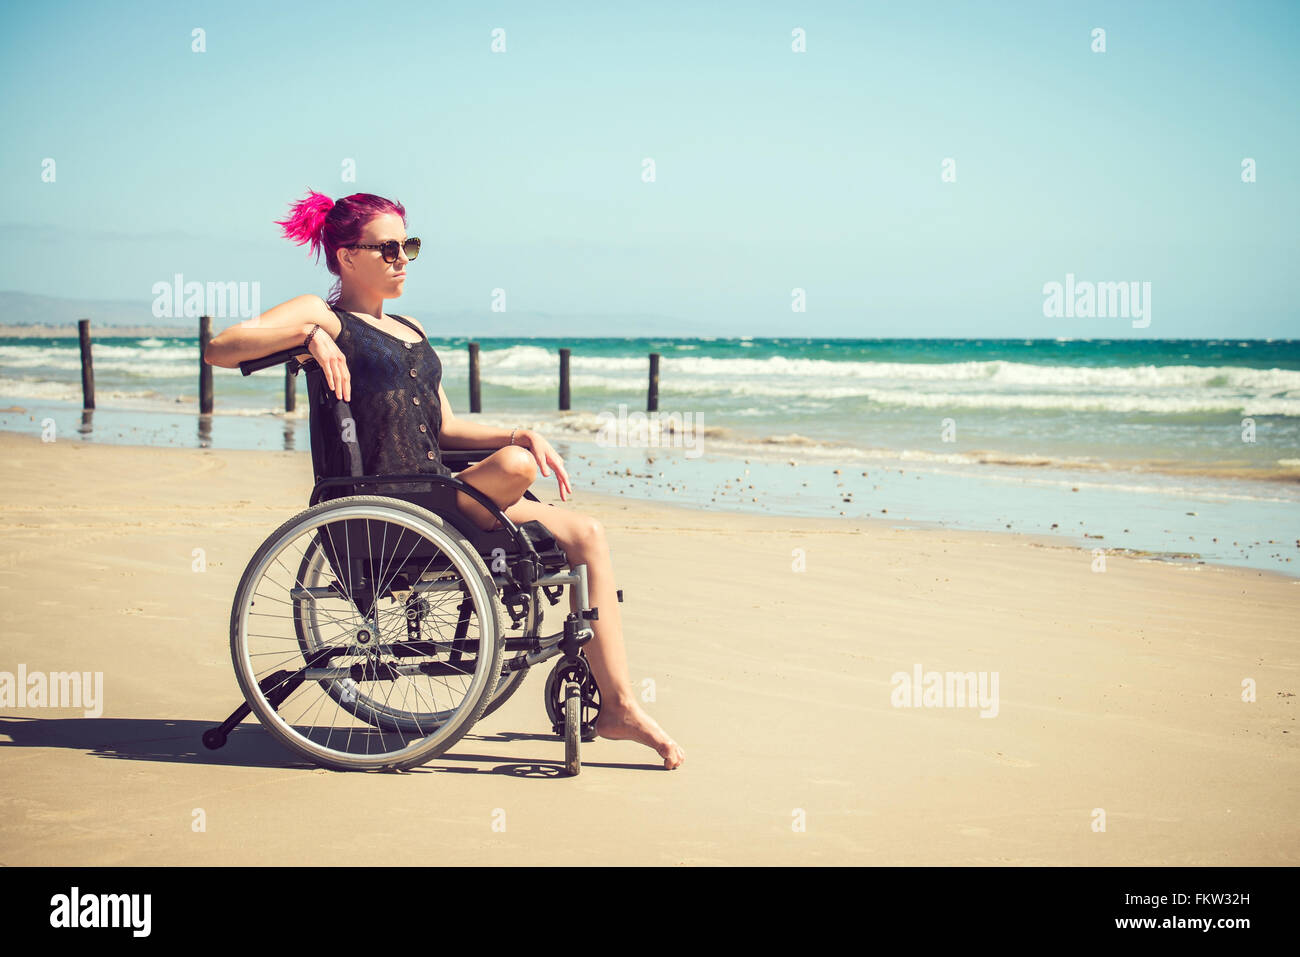 Disabled woman in the wheelchair at the beach. Cross-processed and color-toned image. - Stock Image